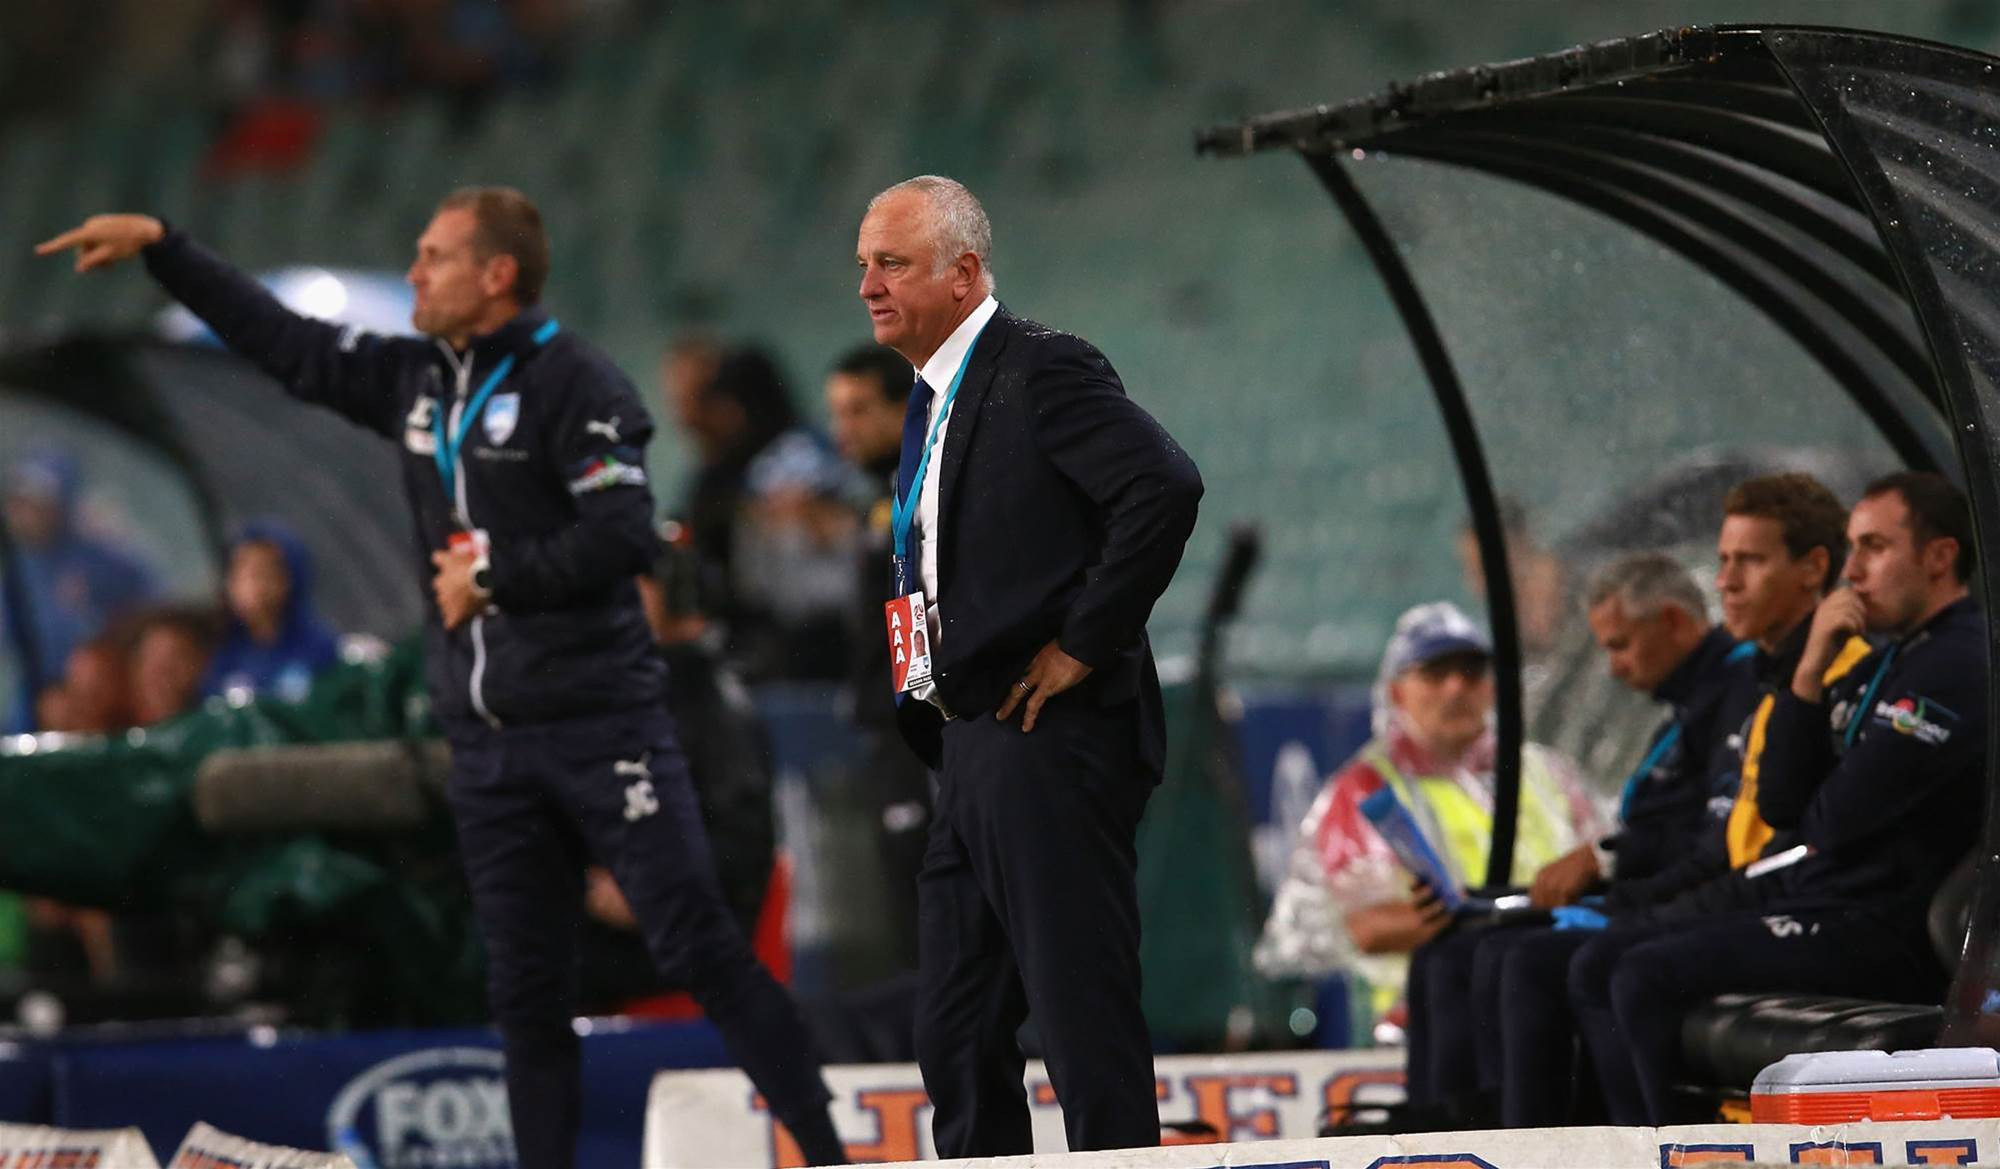 Arnold swats up on Adelaide United ahead of FFA Cup final